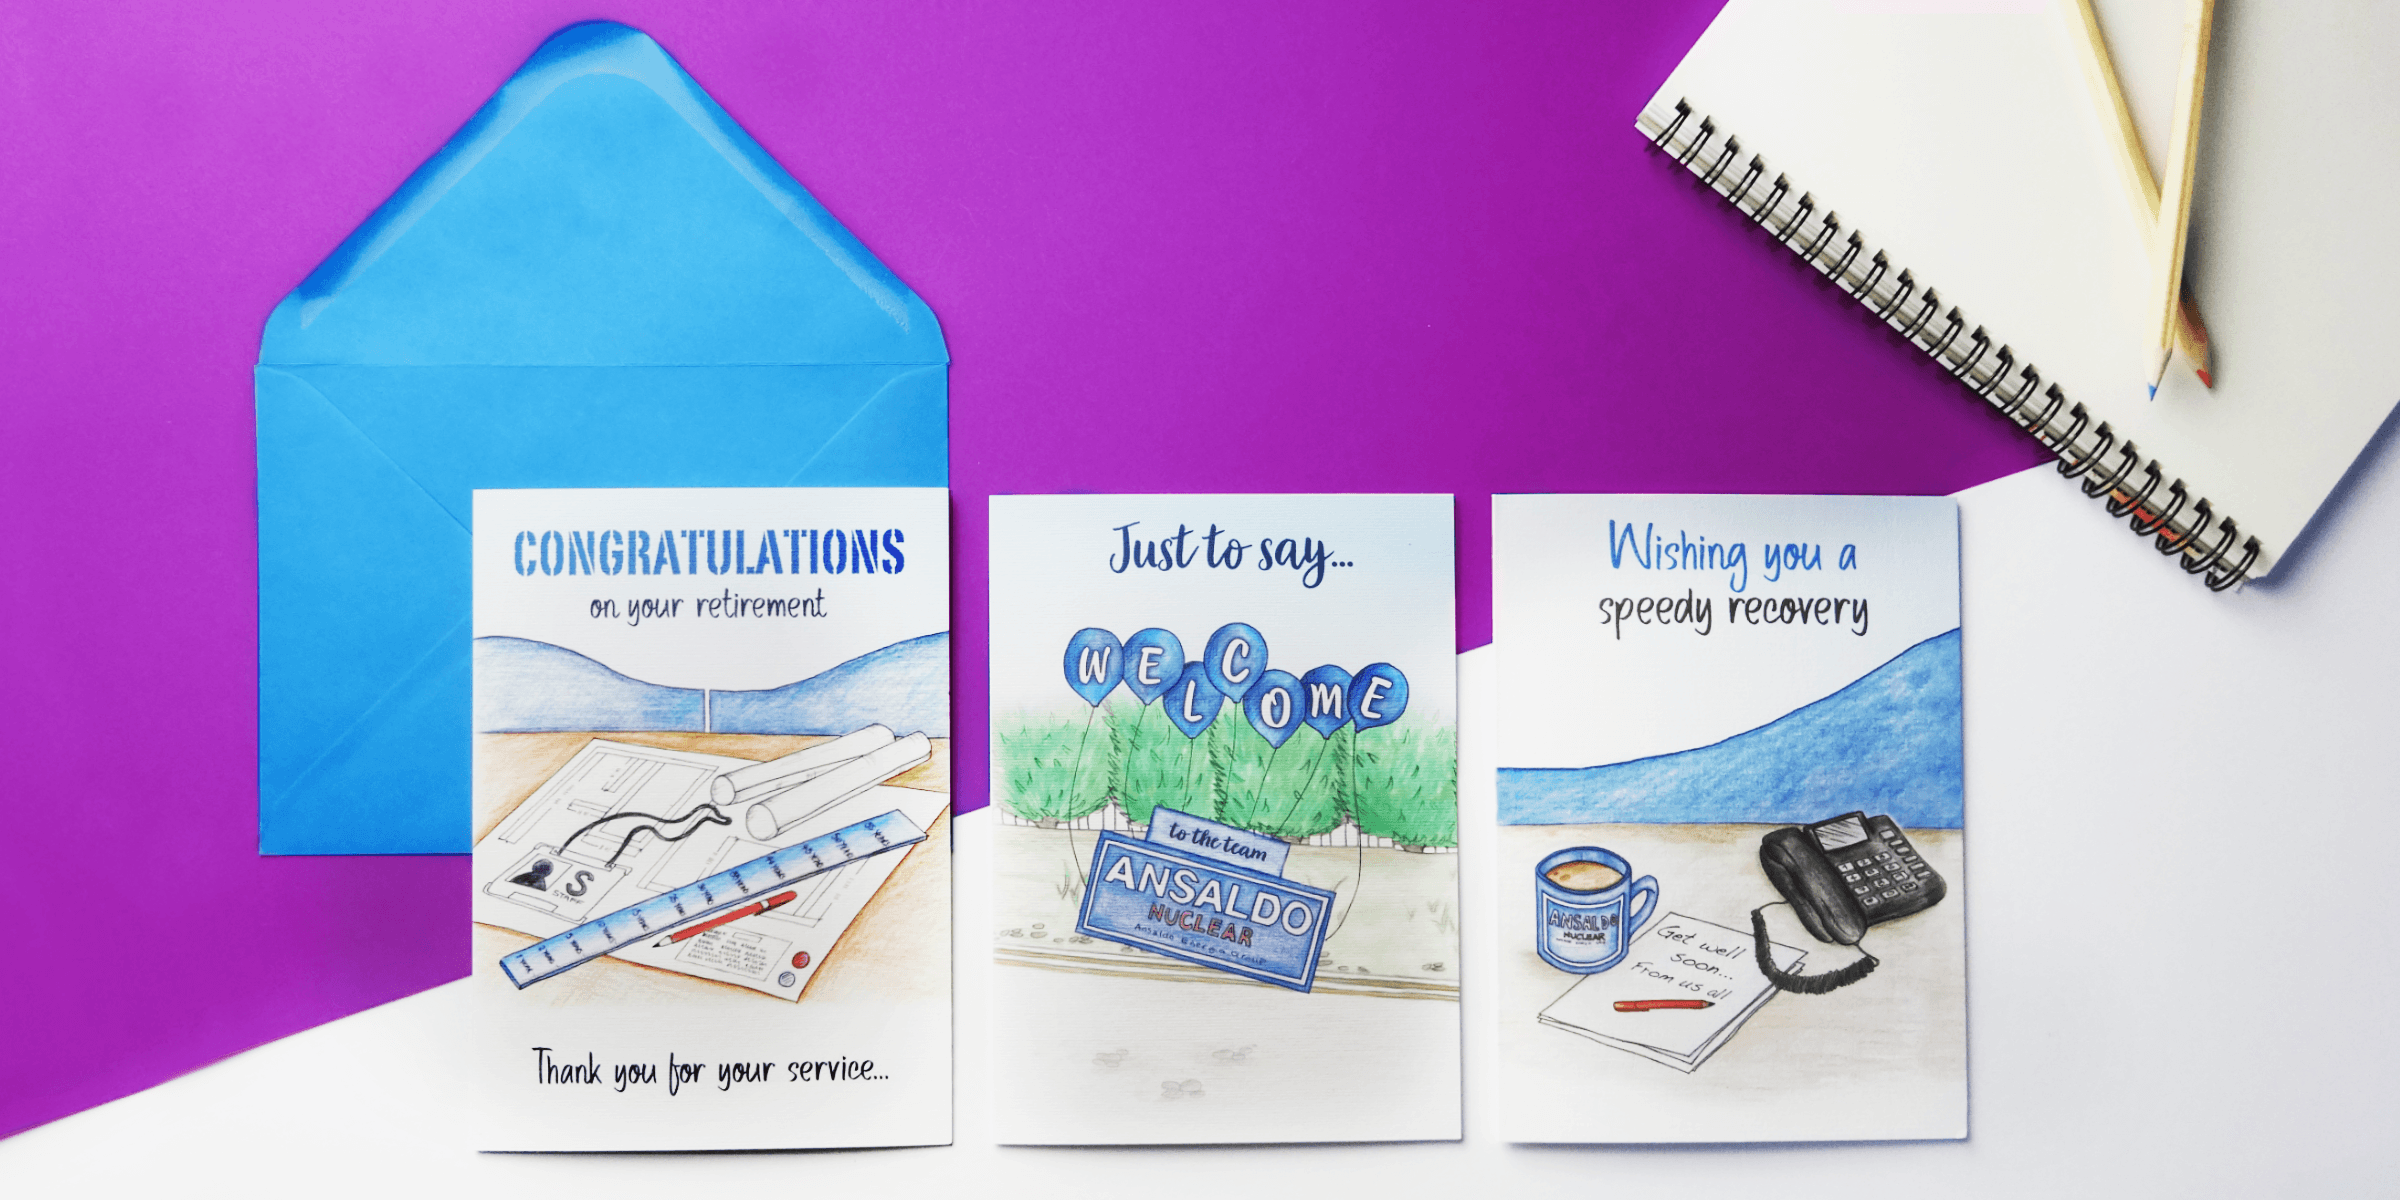 HR Thank you for your service welcome get well soon personalised Entering into a new start Corporate greeting card of hand drawn house bespoke for business company cards